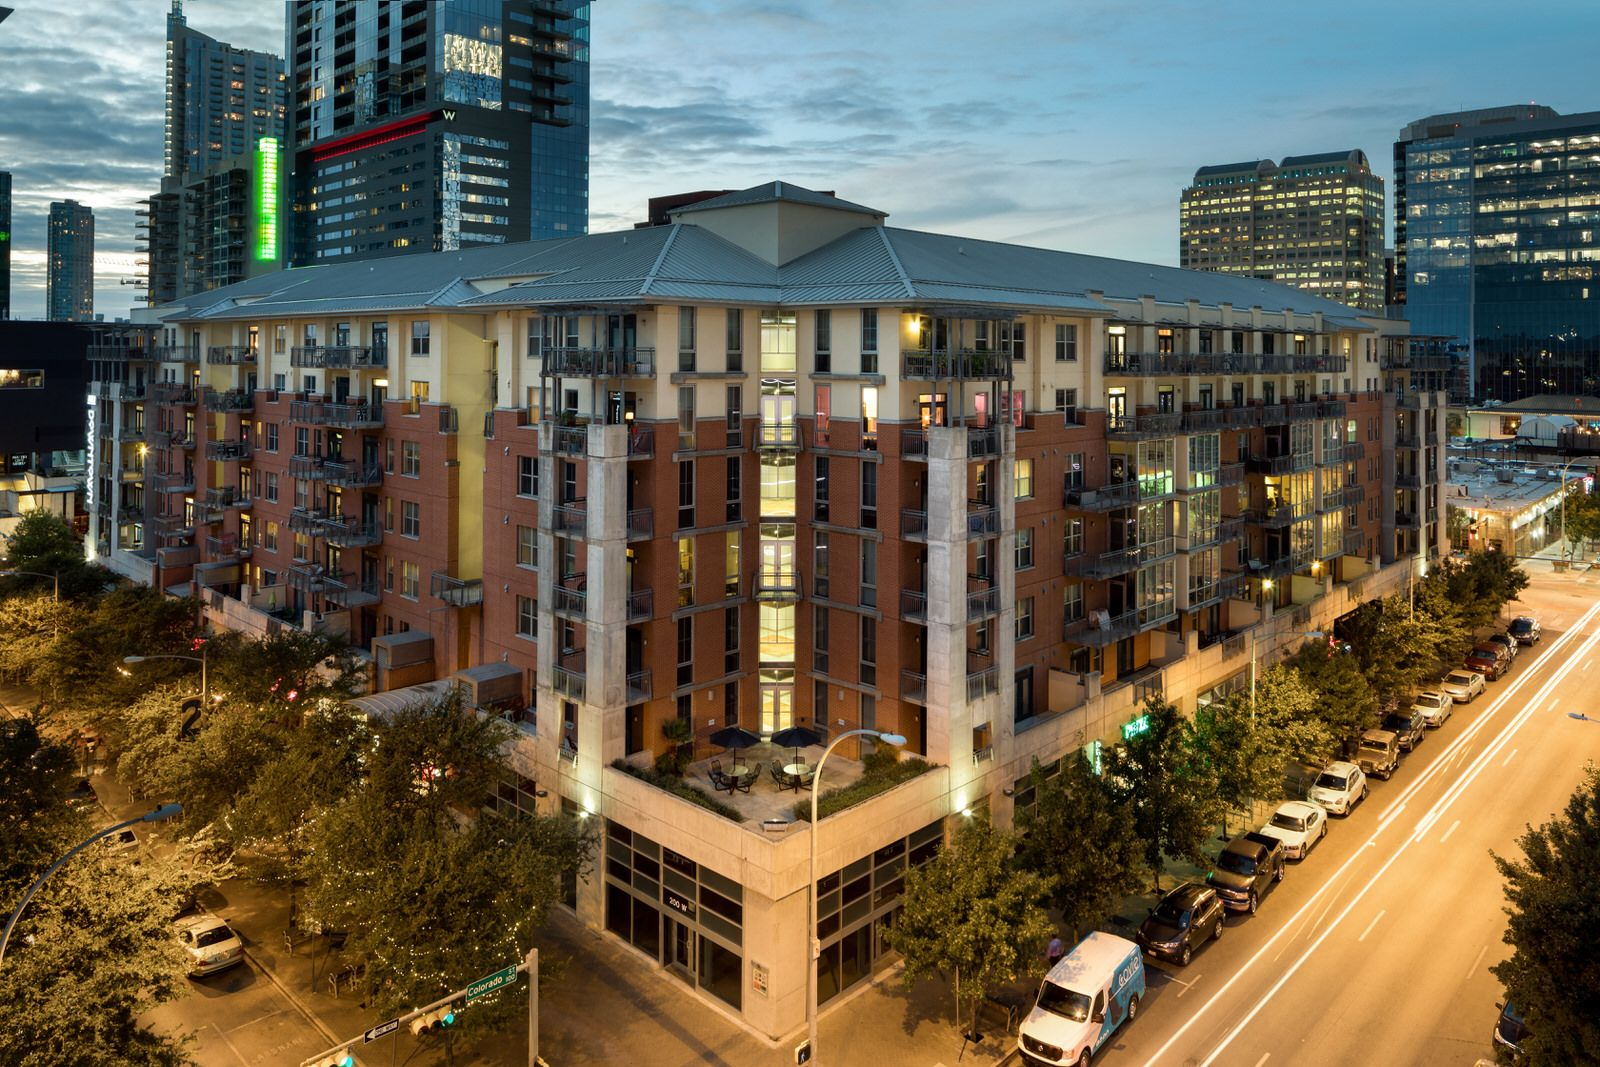 Our Austin apartments look even better at night. Austin